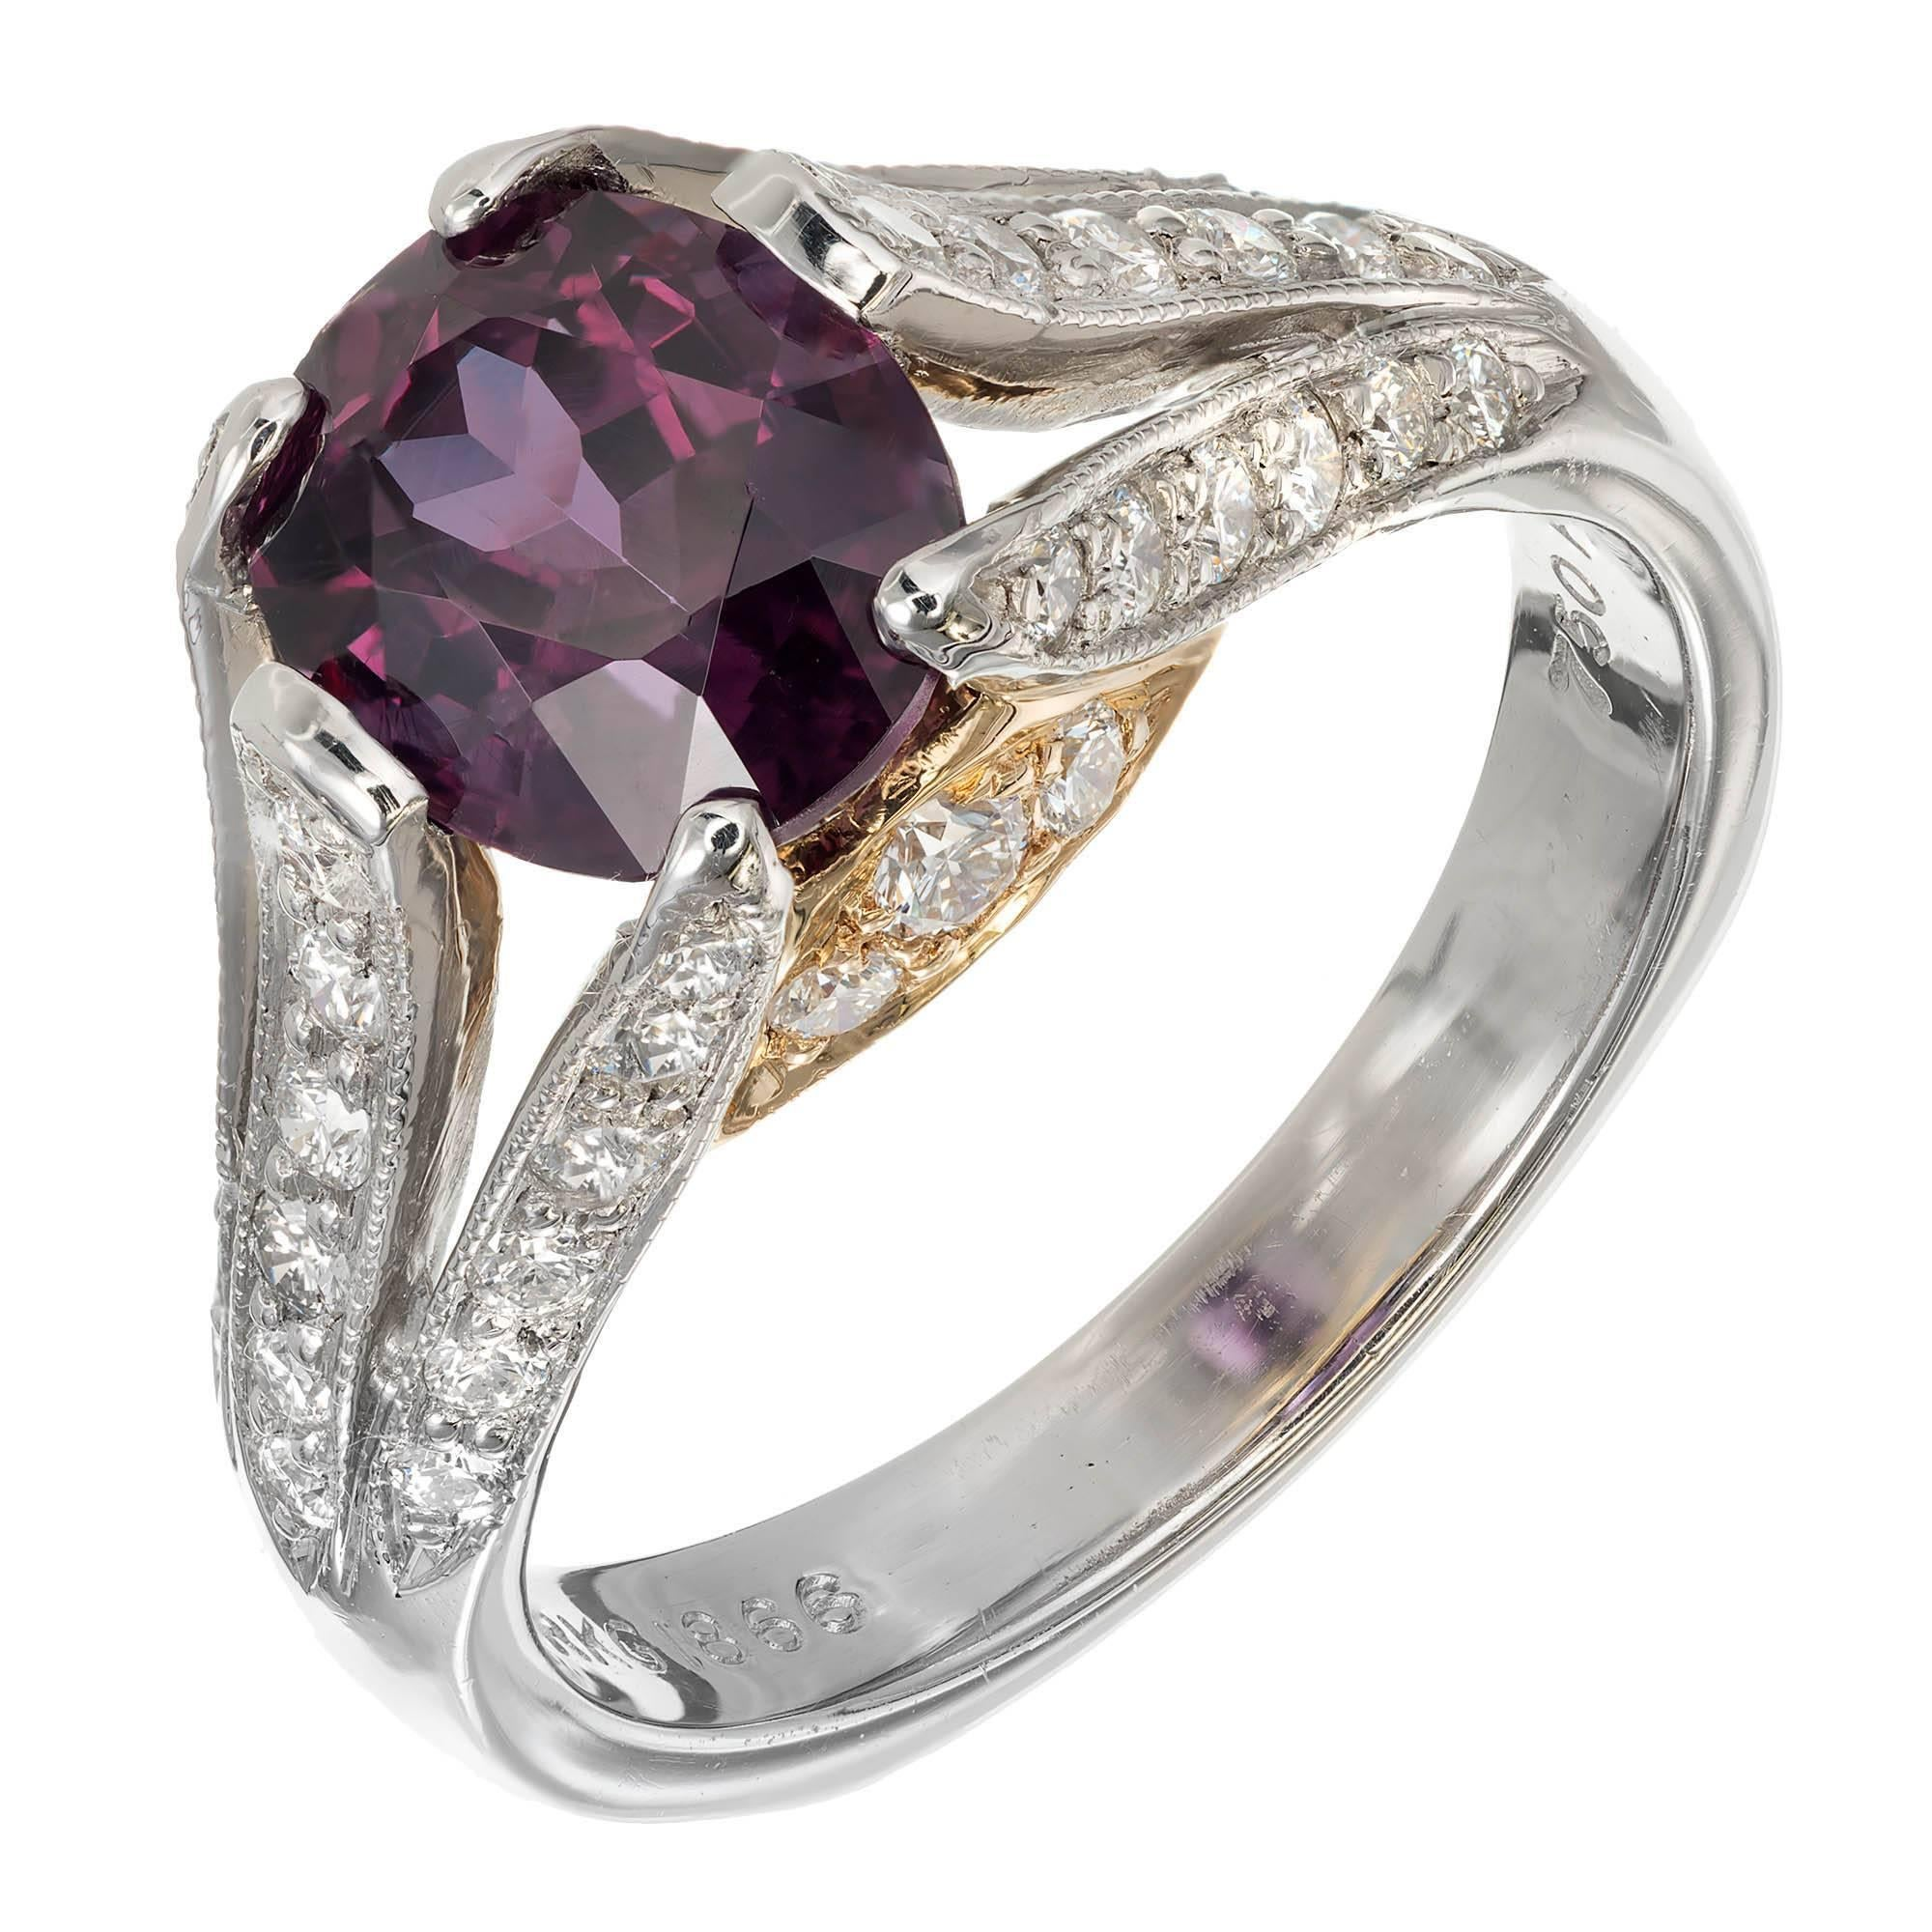 patterson rings petite collection engagement semi designer from mark more mounting promise three stone